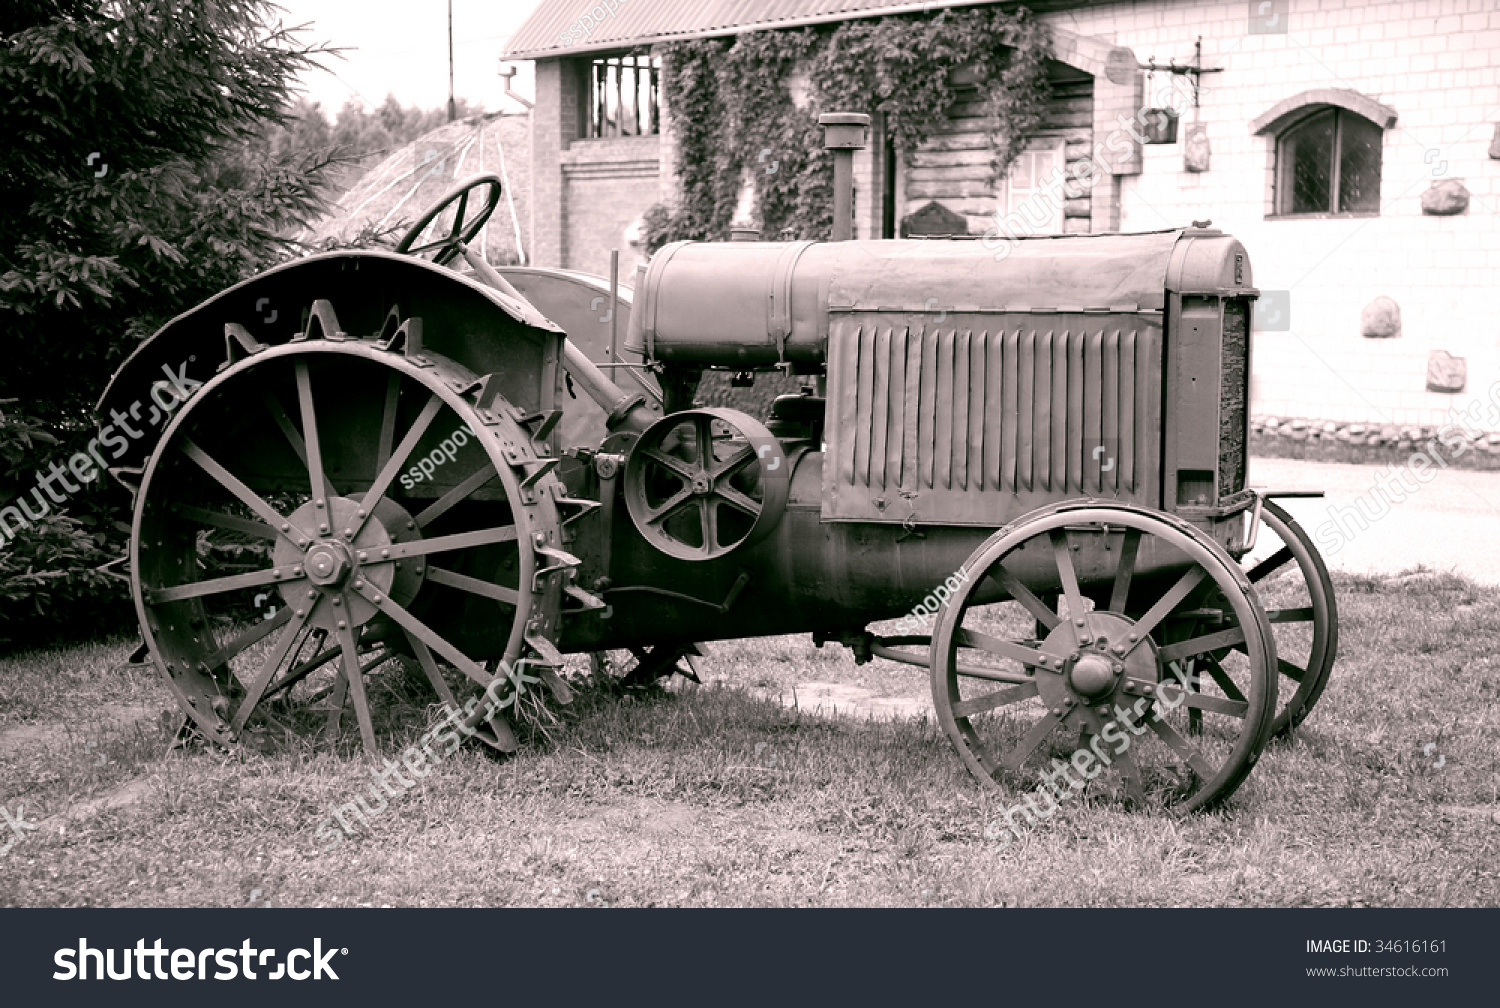 Iron Wheel Tractors : Old tractor with iron wheels is thrown on a roadside stock